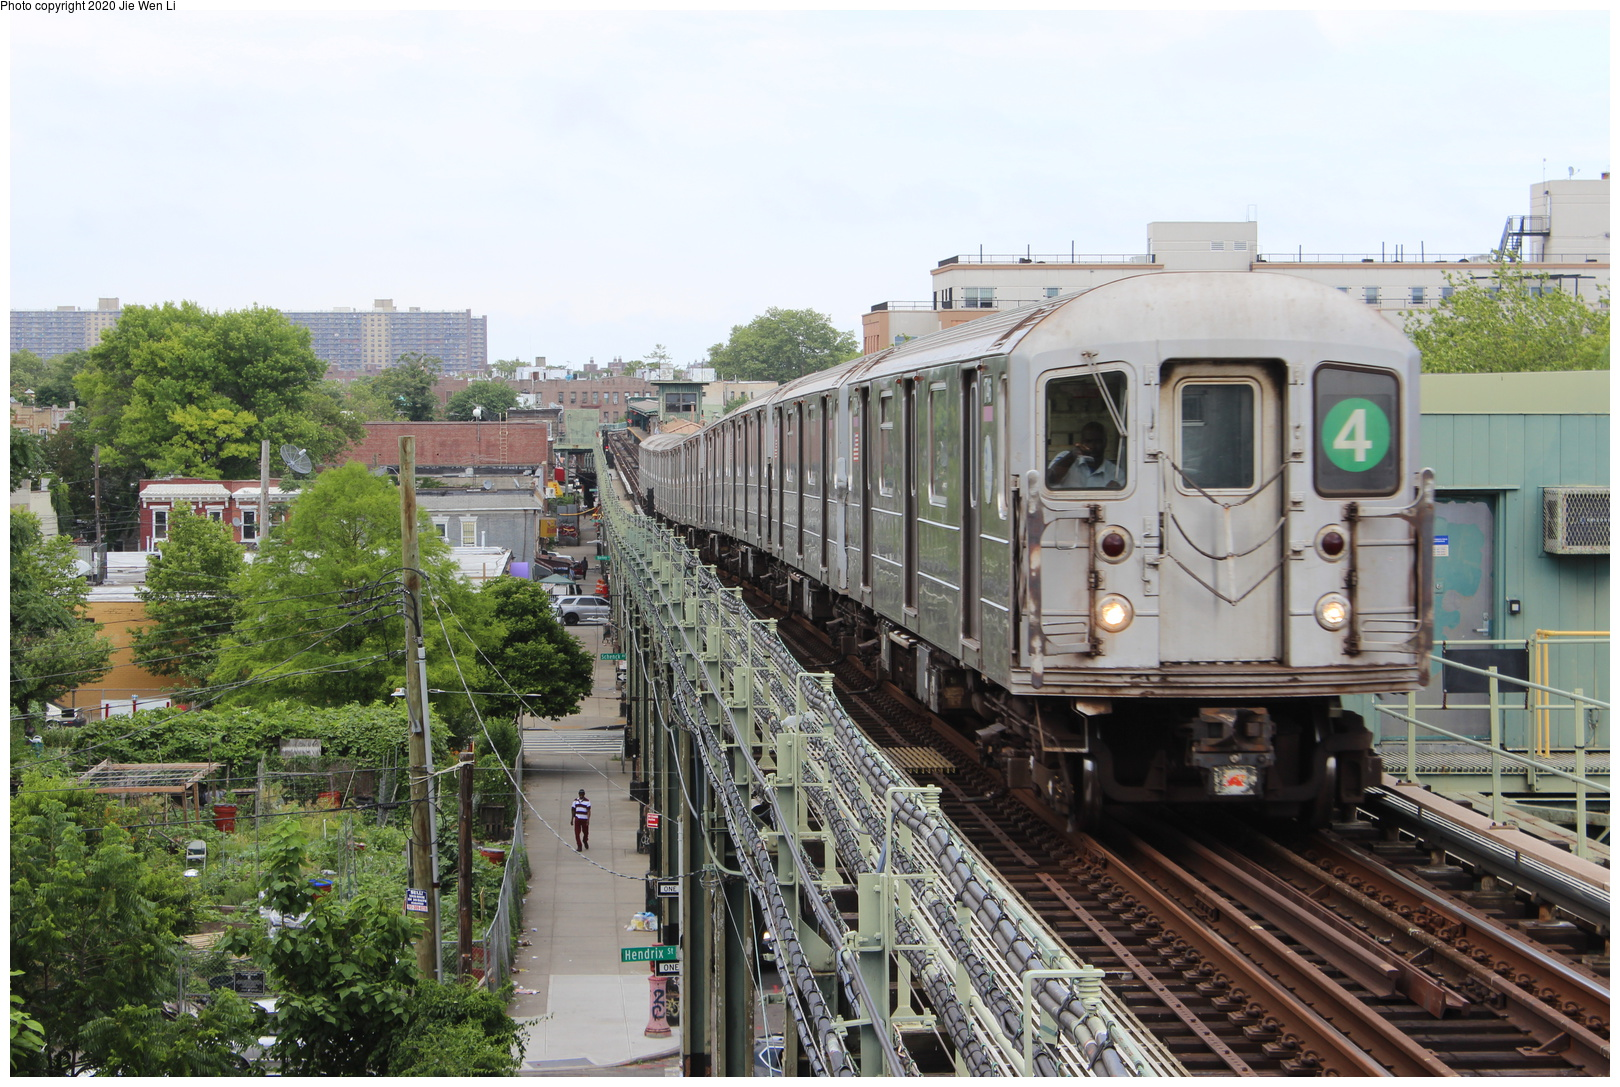 (267k, 1044x726)<br><b>Country:</b> United States<br><b>City:</b> New York<br><b>System:</b> New York City Transit<br><b>Line:</b> BMT Myrtle Avenue Line<br><b>Location:</b> Metropolitan Avenue <br><b>Car:</b> BMT Multi  <br><b>Photo by:</b> Joel Shanus<br><b>Viewed (this week/total):</b> 0 / 1740